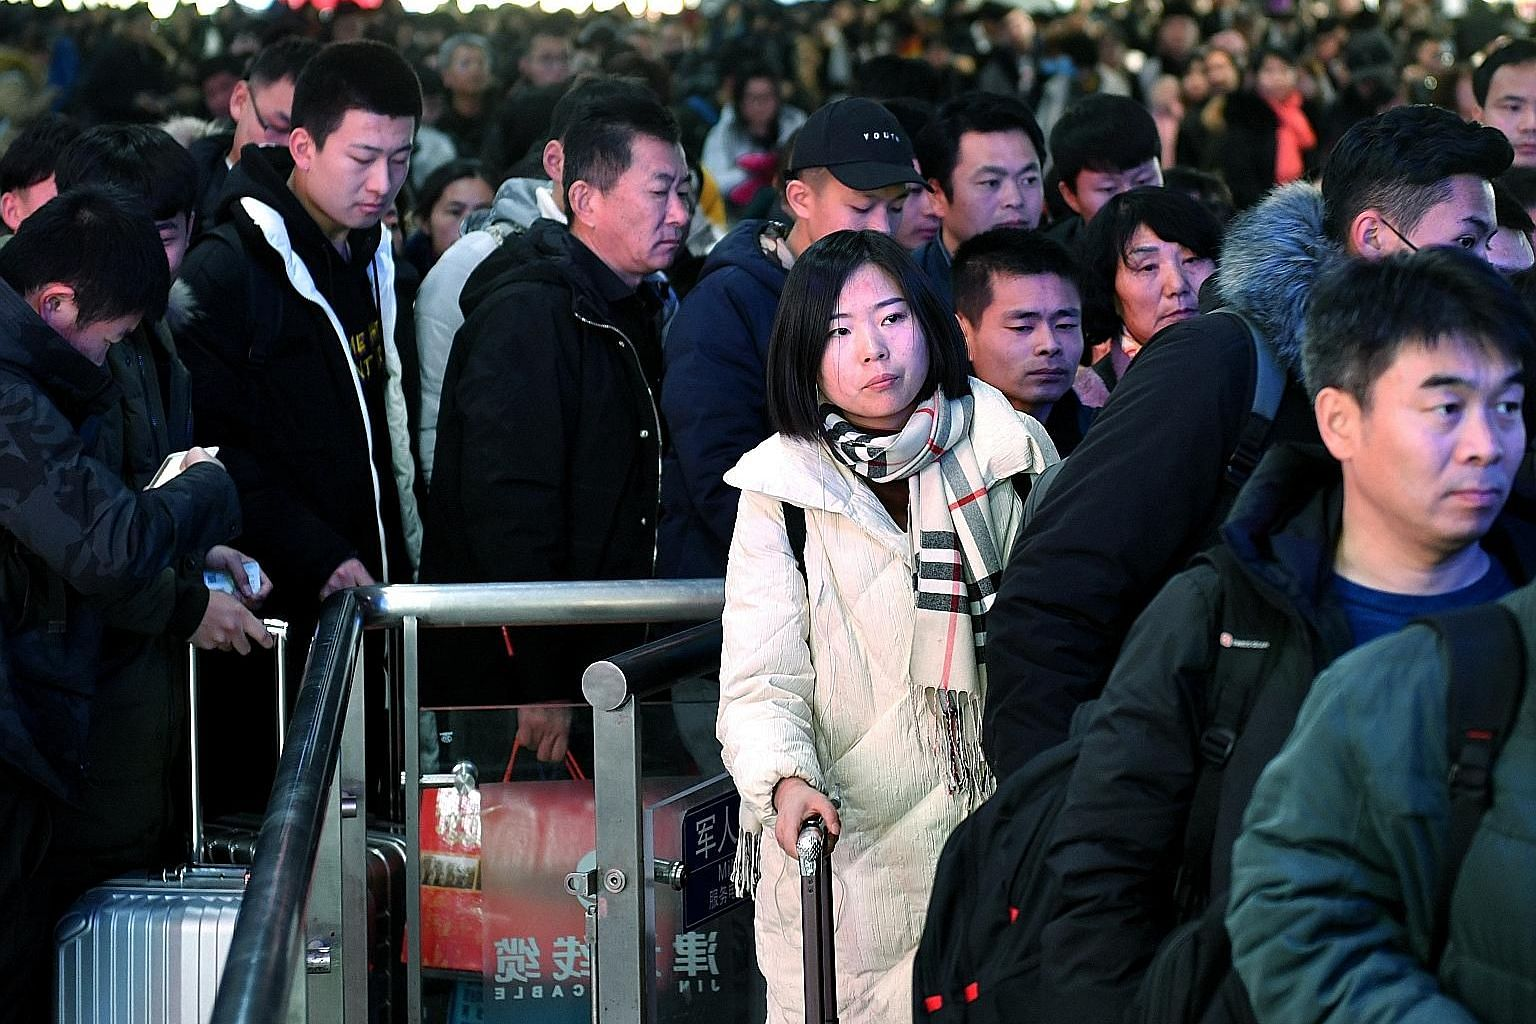 The Jinan train station in eastern China's Shandong province seeing its first peak passenger volume last Thursday before the Spring Festival travel rush begins.